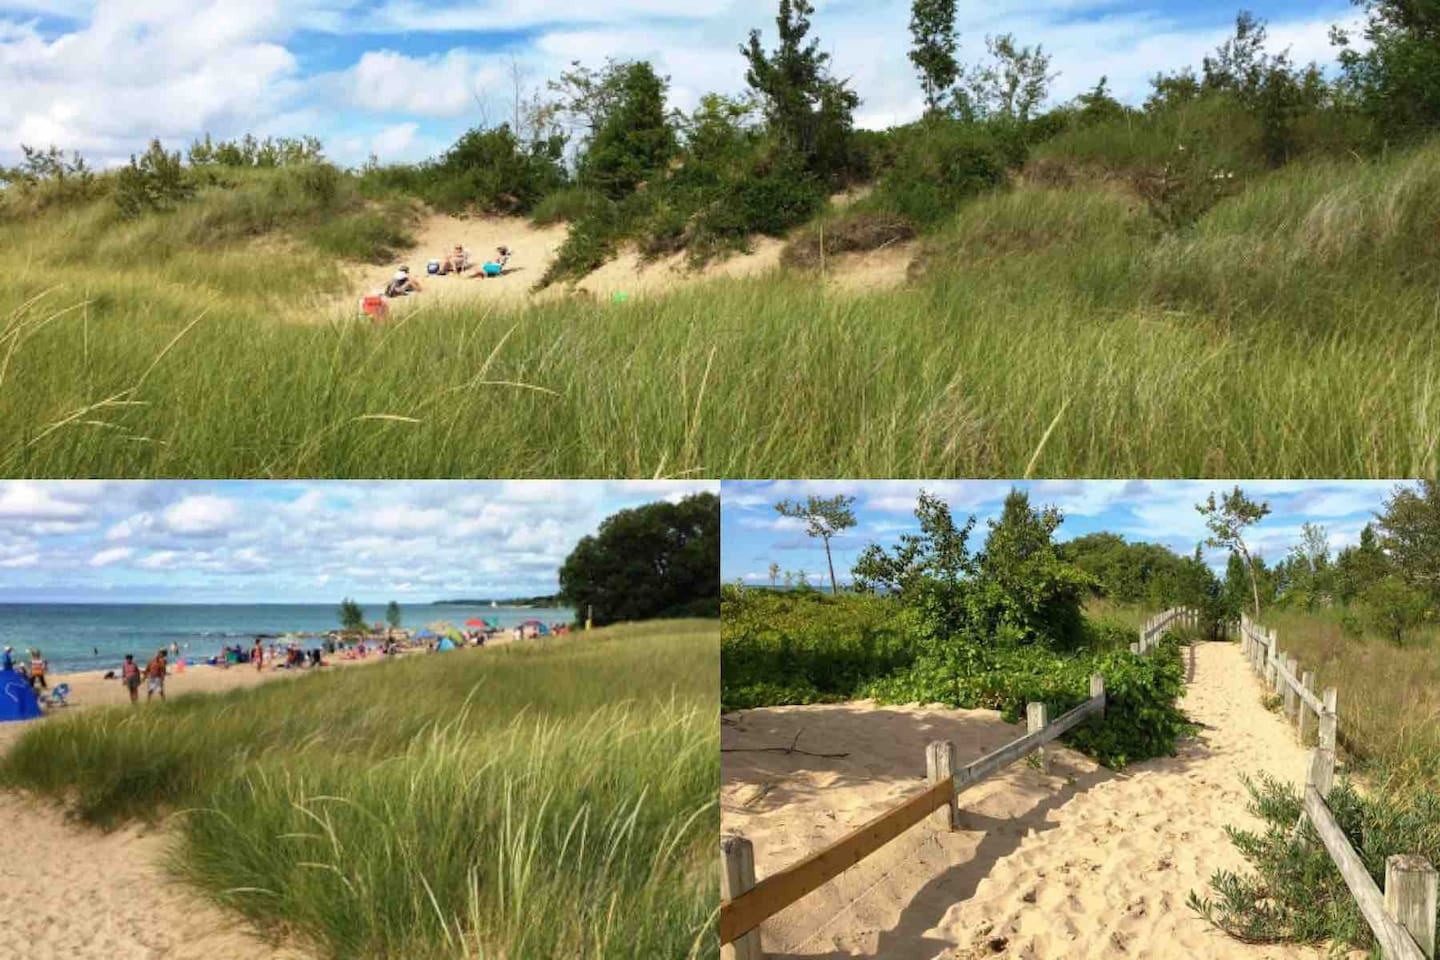 One of the few intact natural dune systems in Ontario, they protect the shoreline from  storm waves and provide a perfect environment for numerous types of flora and fauna which flourish in a hot, dry climate.   Images curtesy of Southampton tourism.